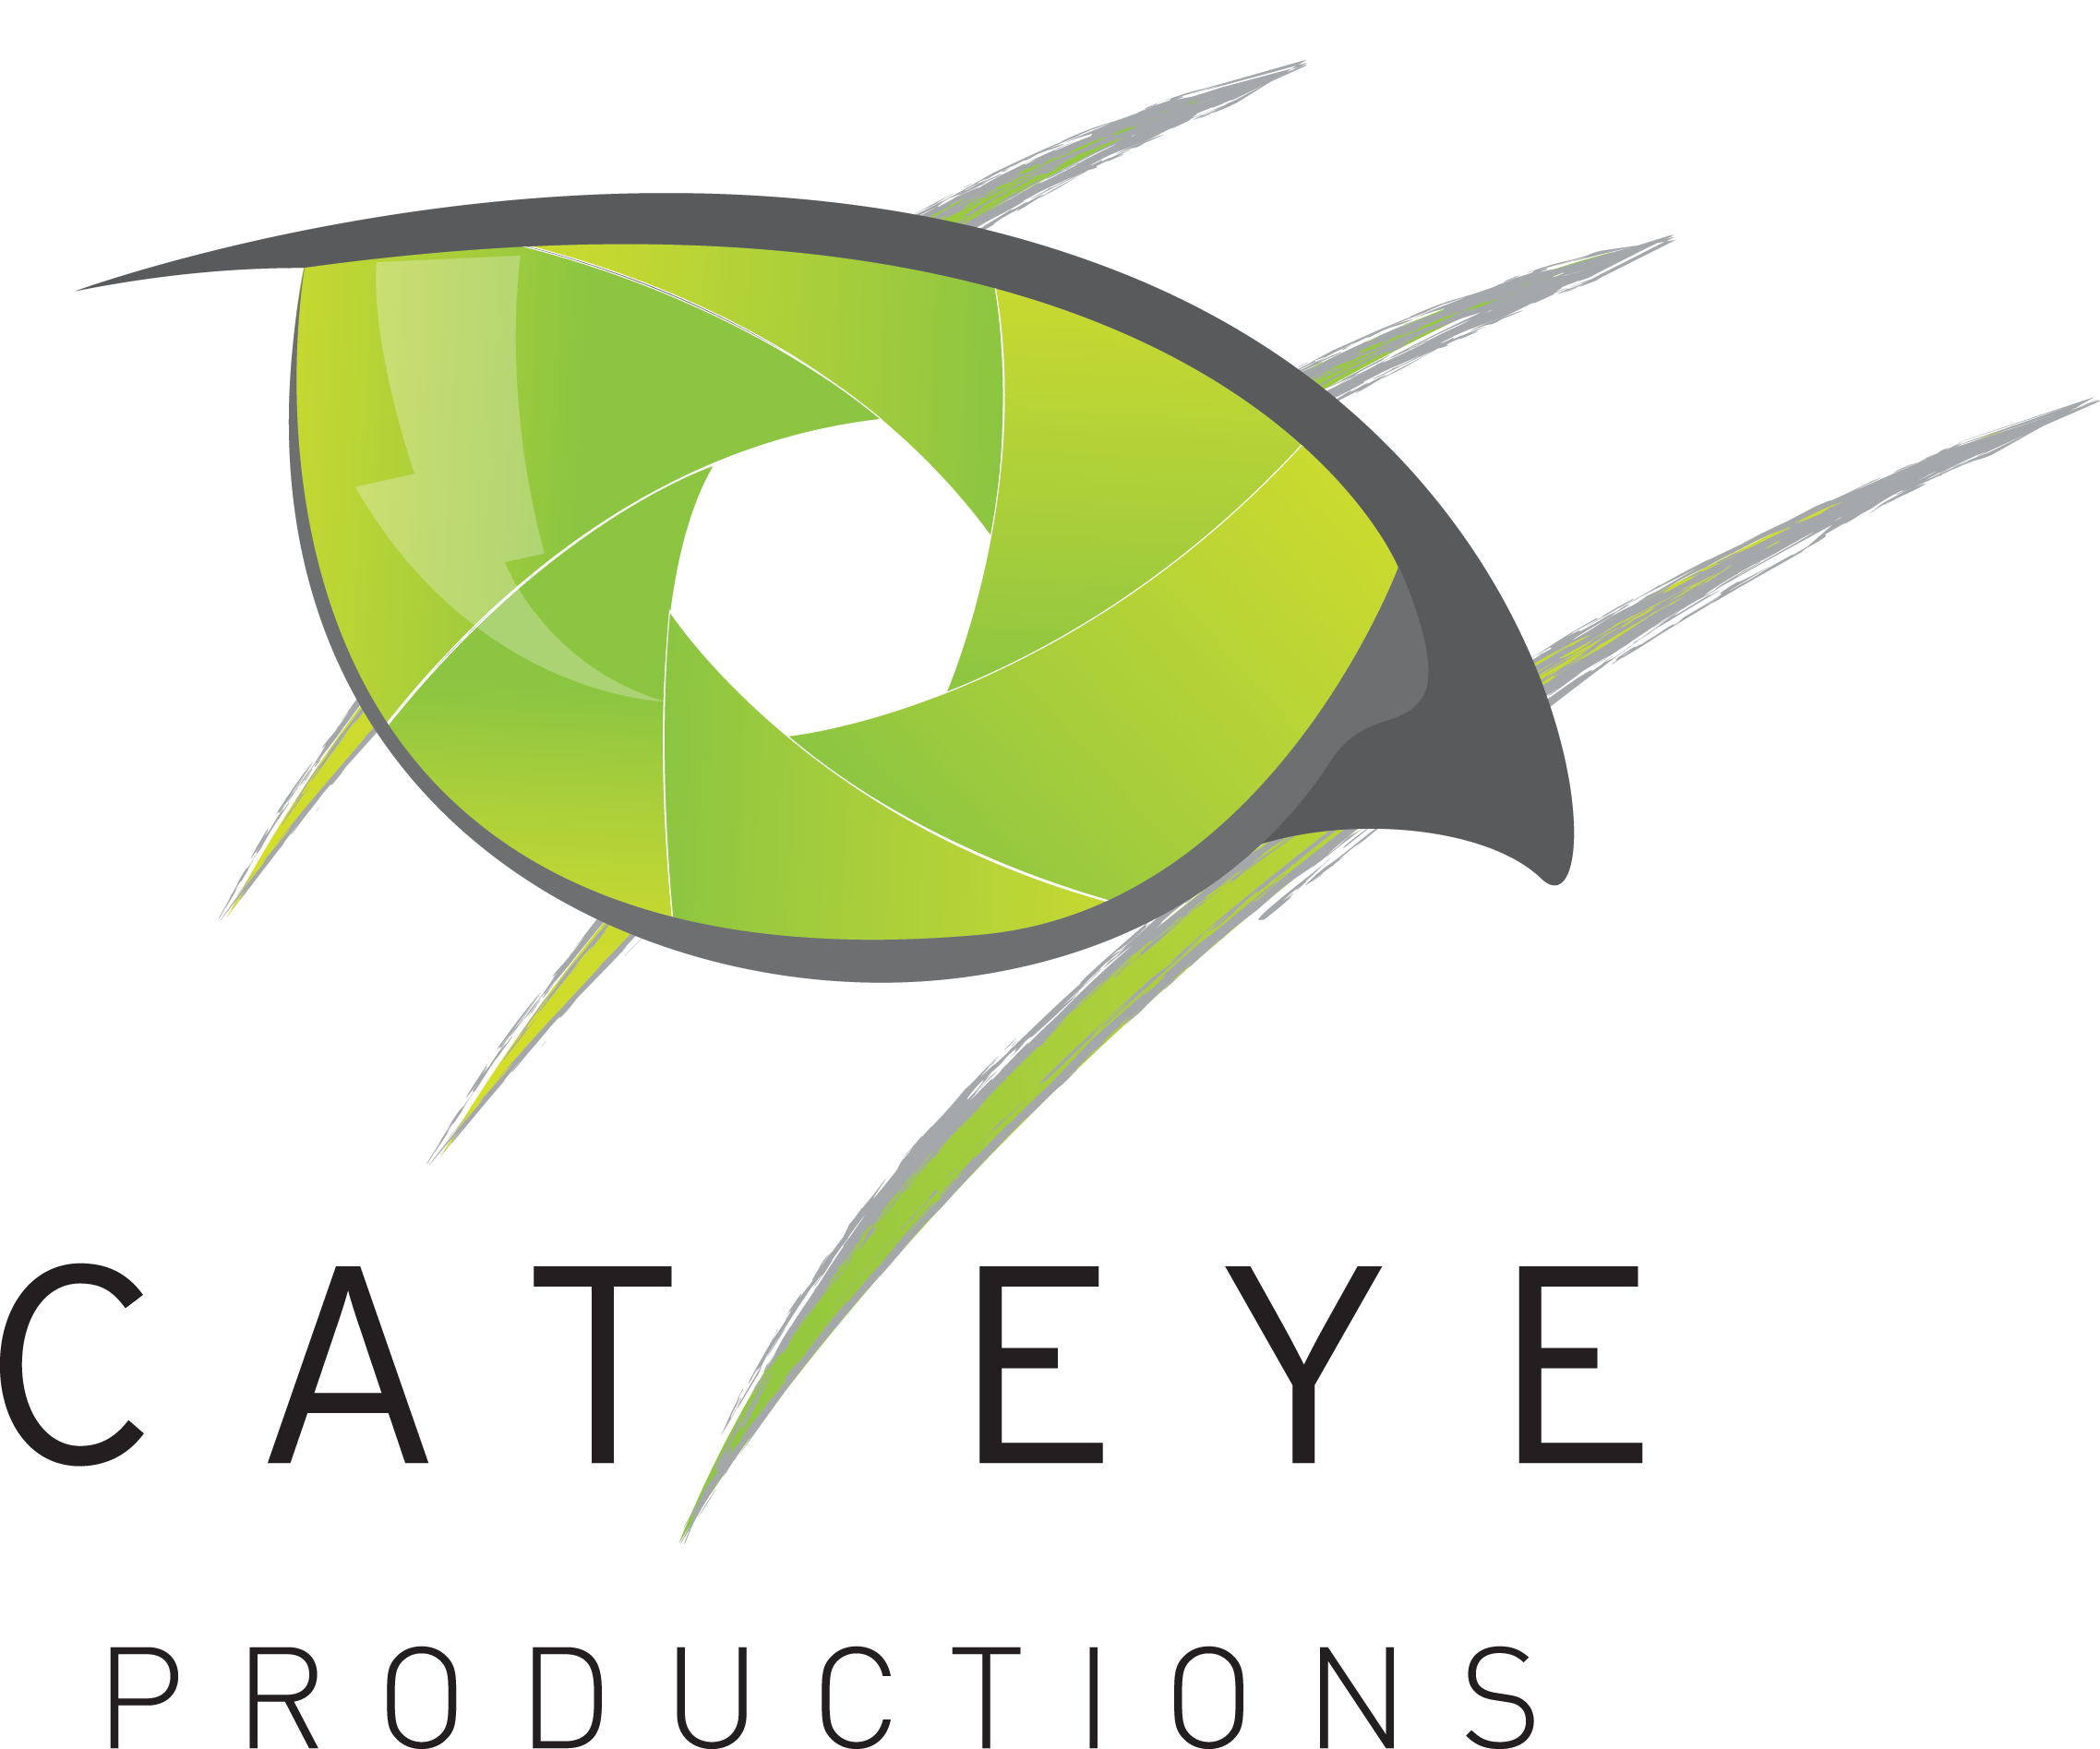 Cat Eye Productions